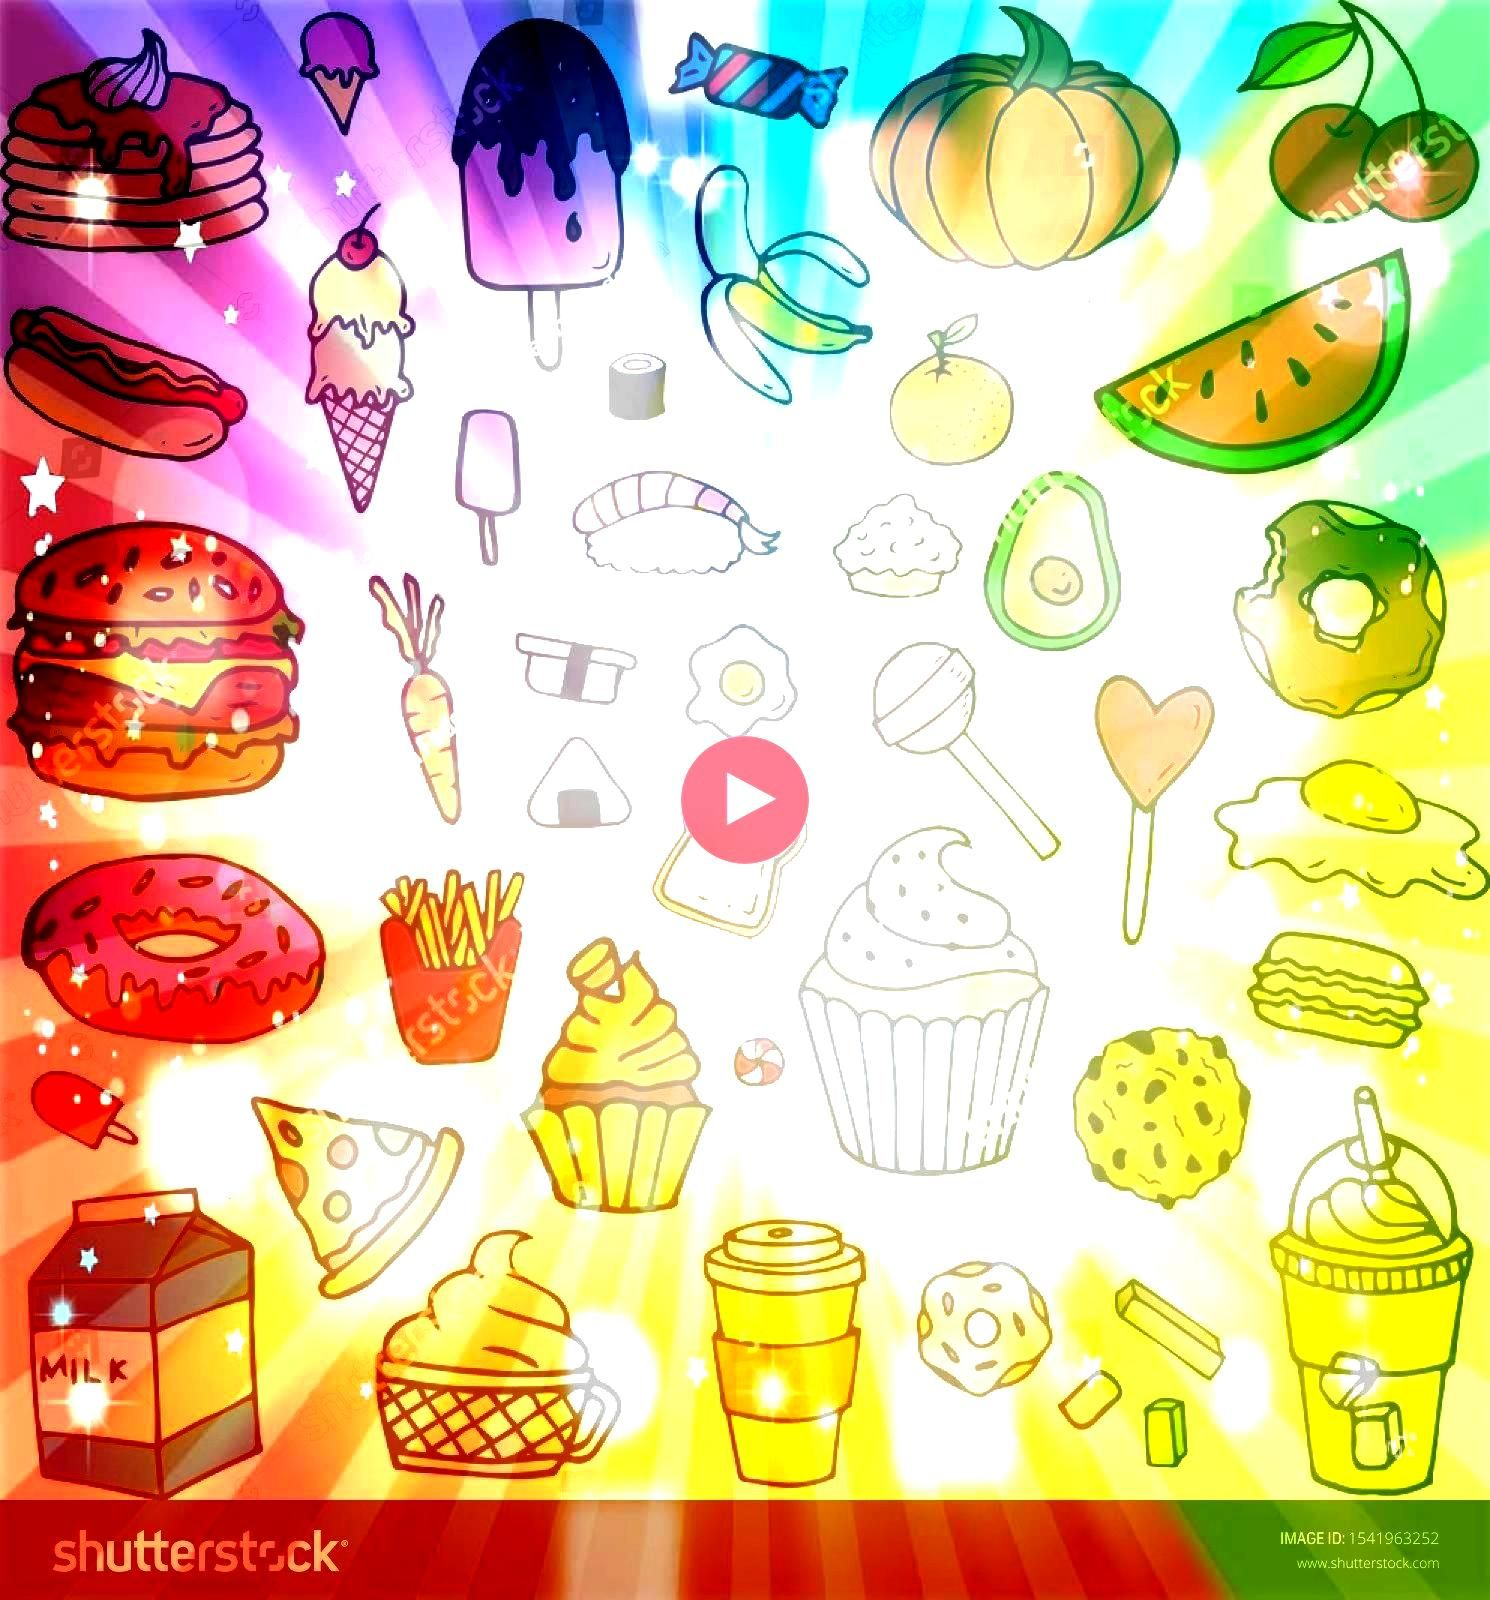 Pastry Fruit Vegetables Ice Cream Drinks Vector Cartoon Line Doodle Element Isolated on White Background Collection Set Junk Food Dessert Pastry Fruit Vegetables Ice Crea...